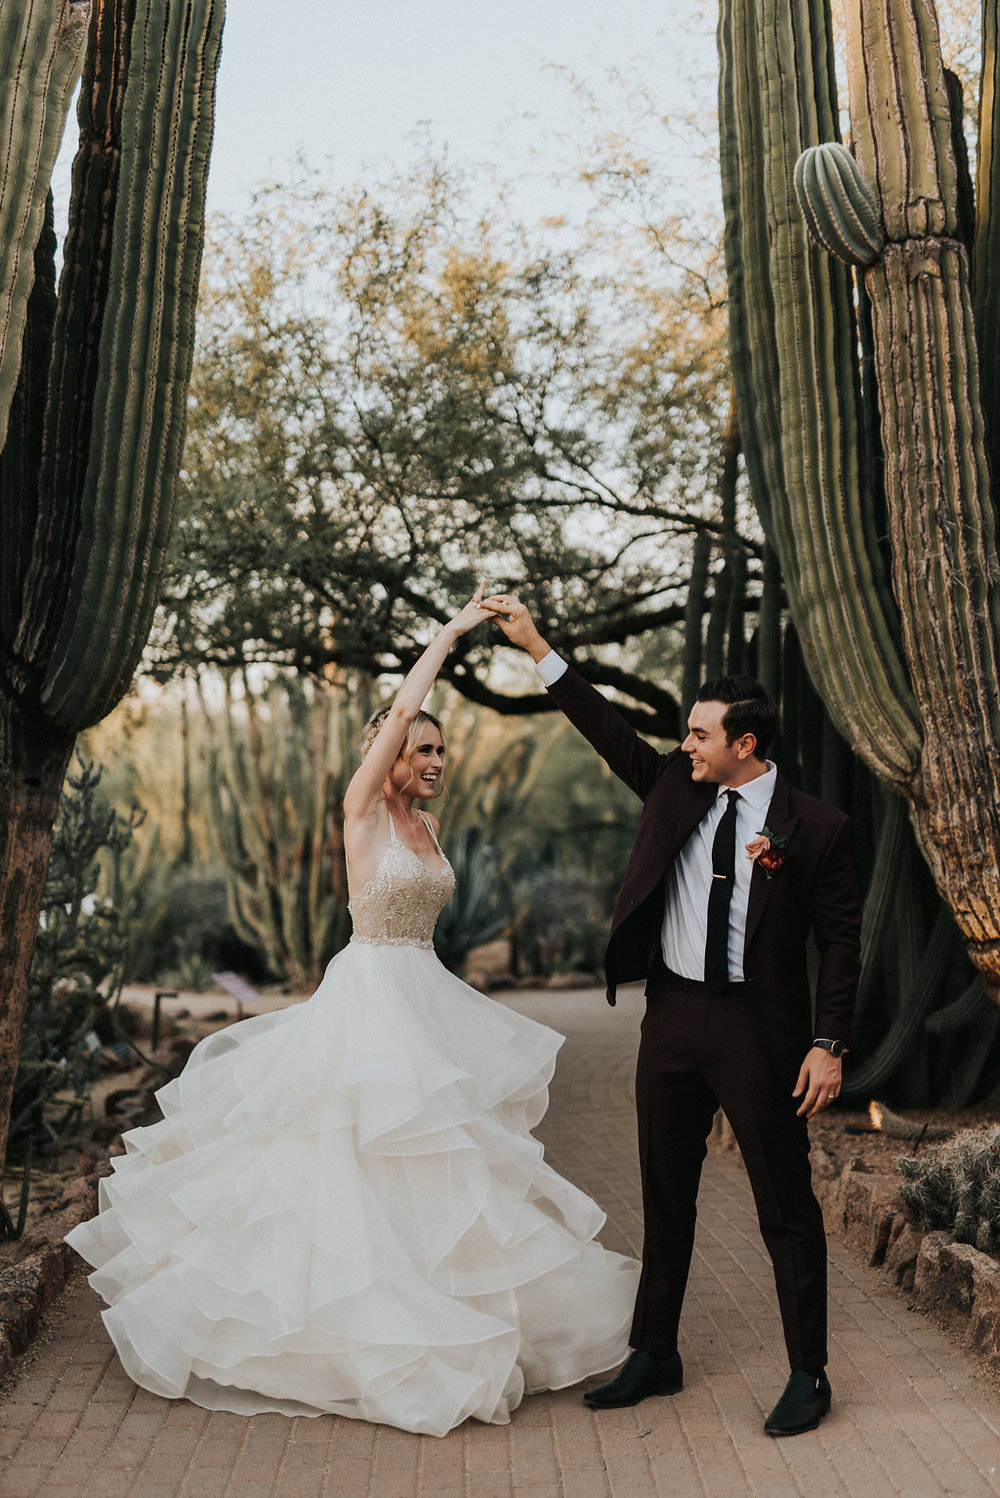 A Colorful Arizona Sunset Wedding at the Desert Botanical Gardens - Tremaine Ranch Arizona Wedding Event Vintage Furniture Tableware Specialty Rentals with Jonnie and Garrett33.jpg